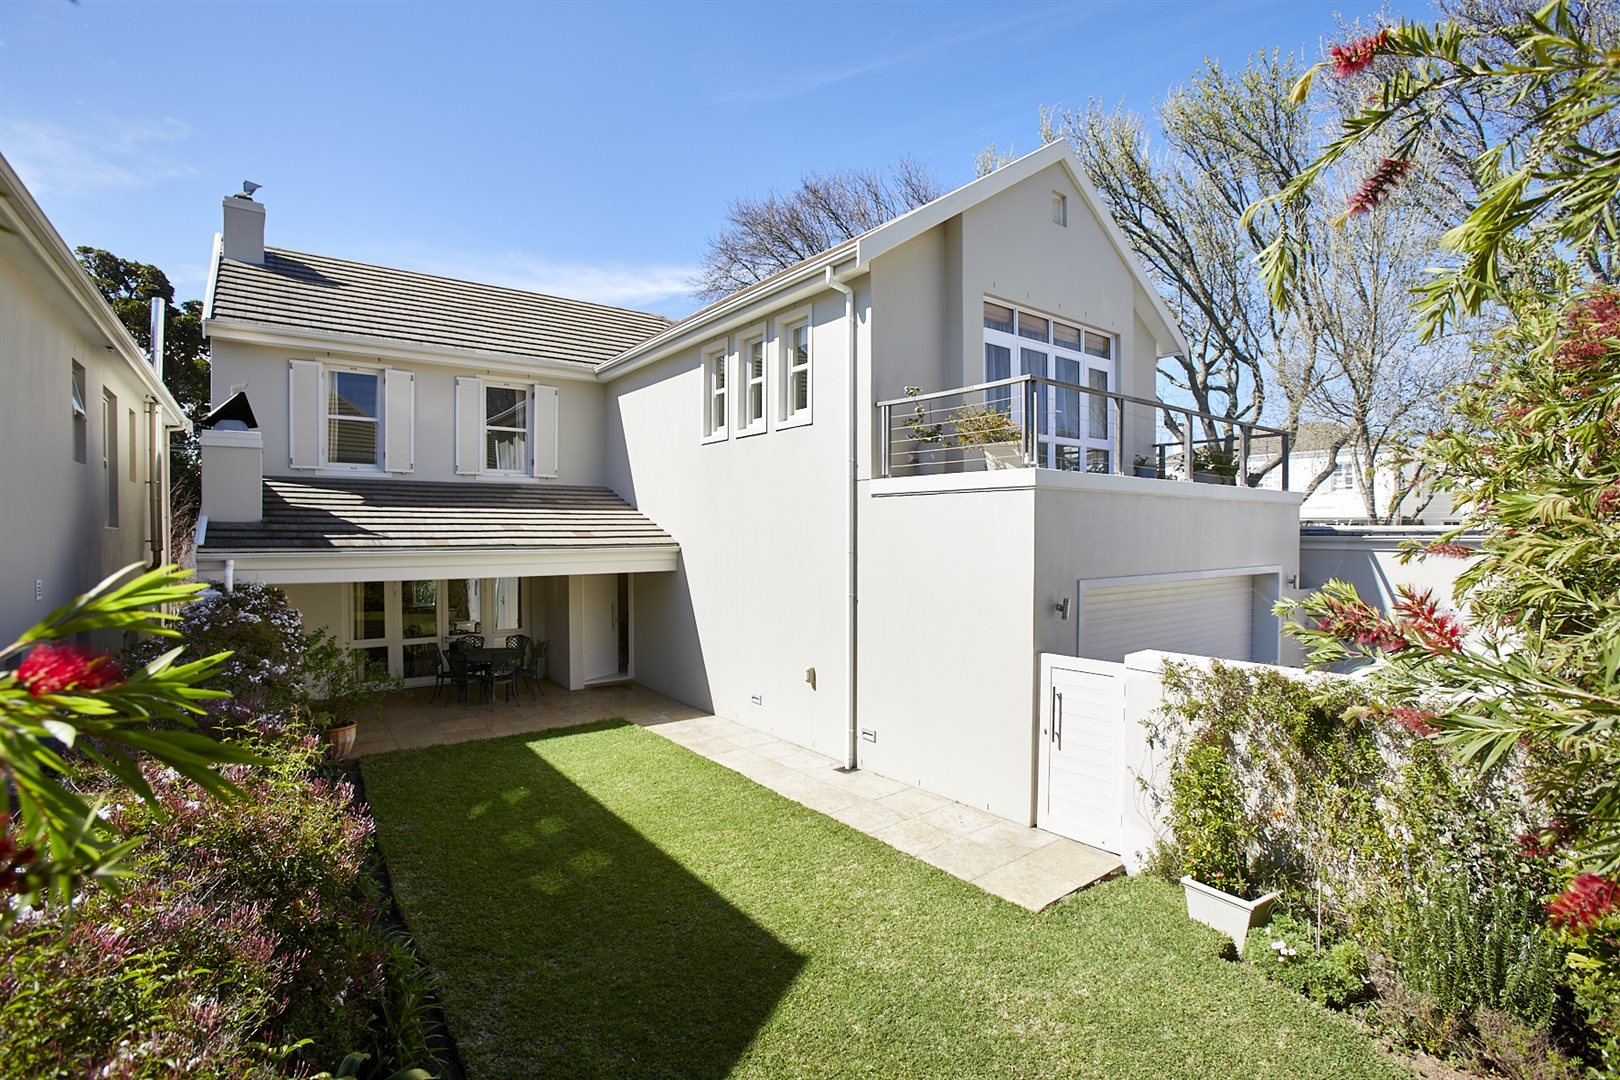 Cape Town, Claremont Upper Property  | Houses For Sale Claremont Upper, Claremont Upper, House 4 bedrooms property for sale Price:8,900,000